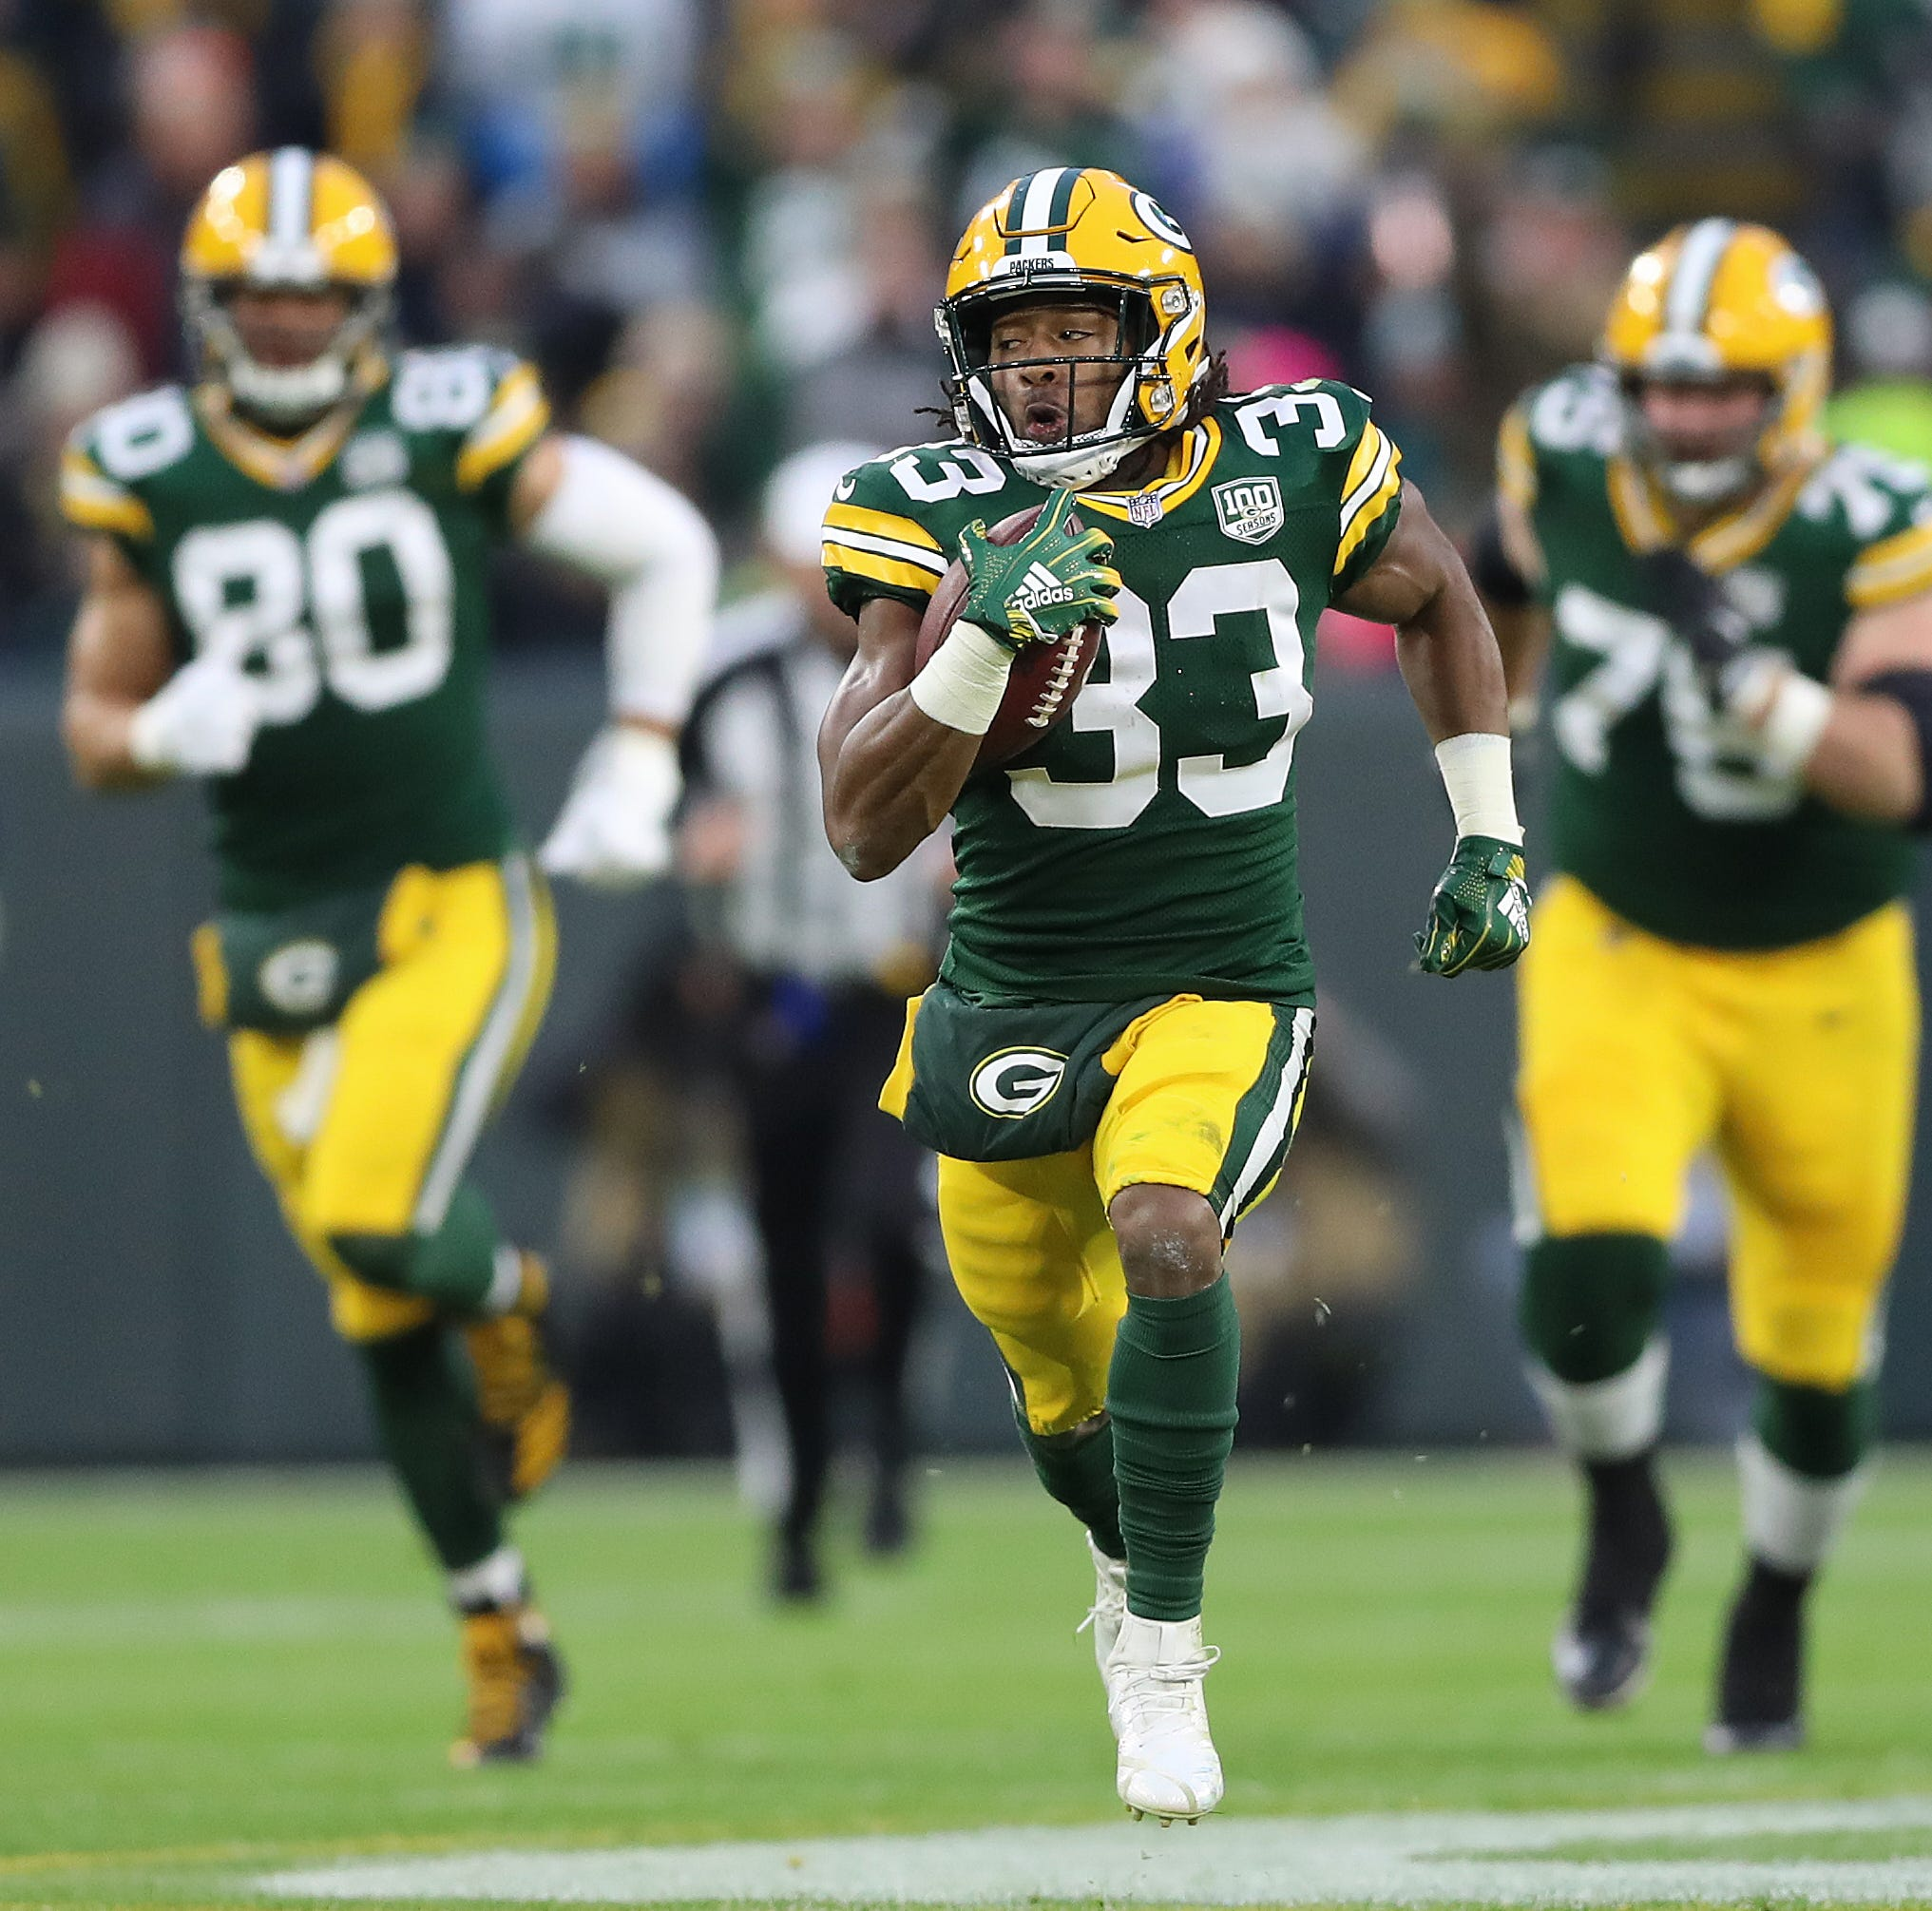 Silverstein: Packers can make statement by running down Seahawks